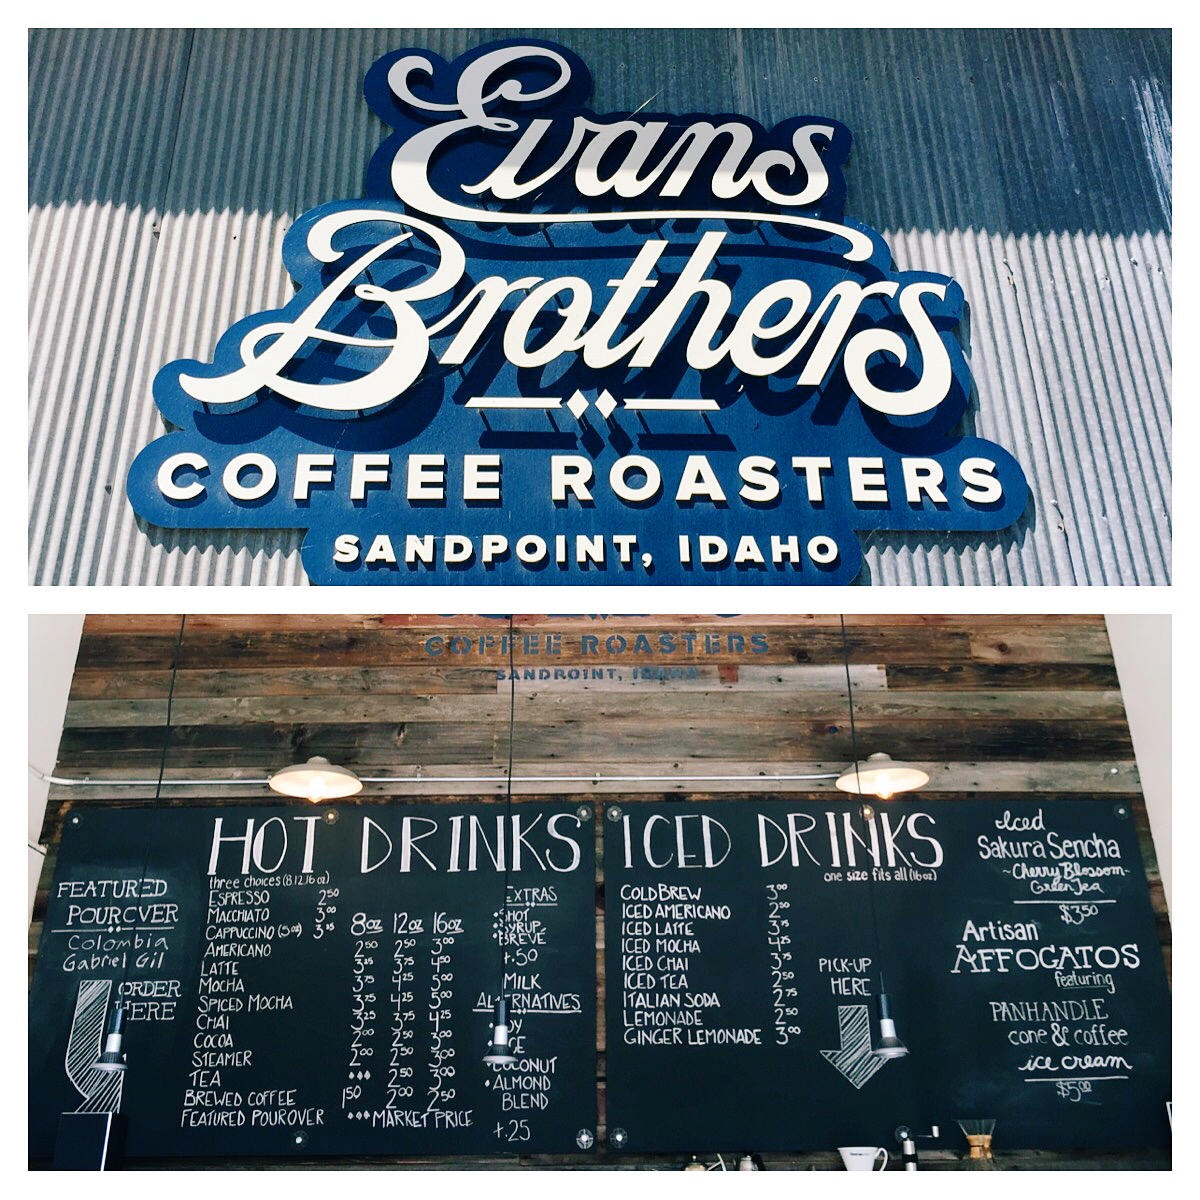 Evans Brothers Coffee  is Sandpoint's answer to Blue BottleCoffee